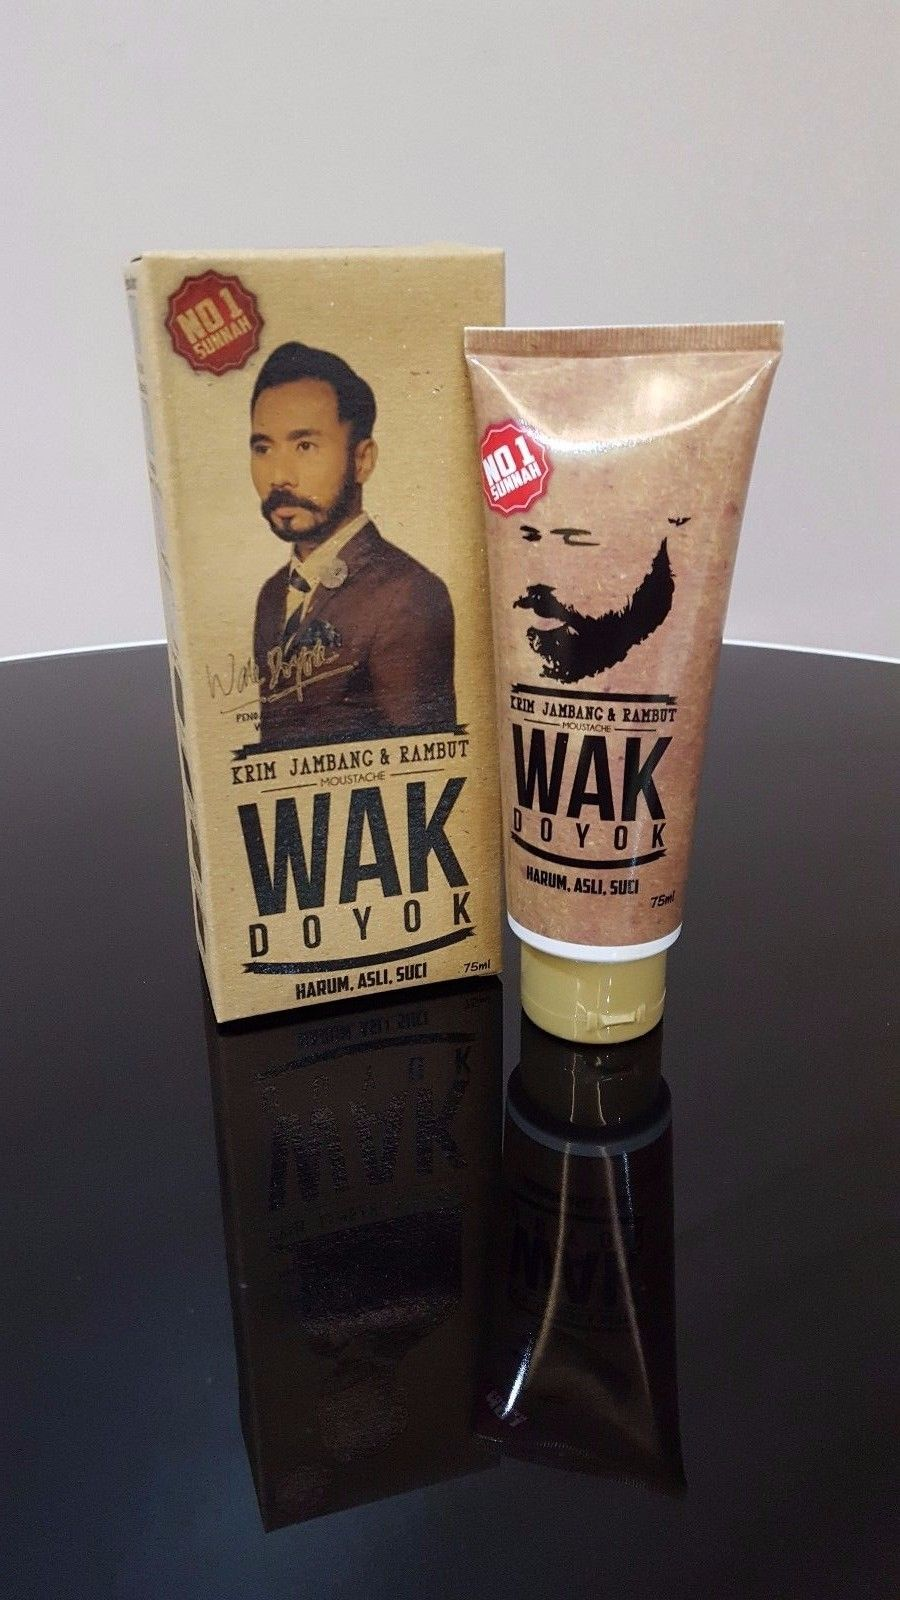 Wak Doyok Hair Trimmers Clippers Ebay Health Beauty Products Krim Jambang Fashion